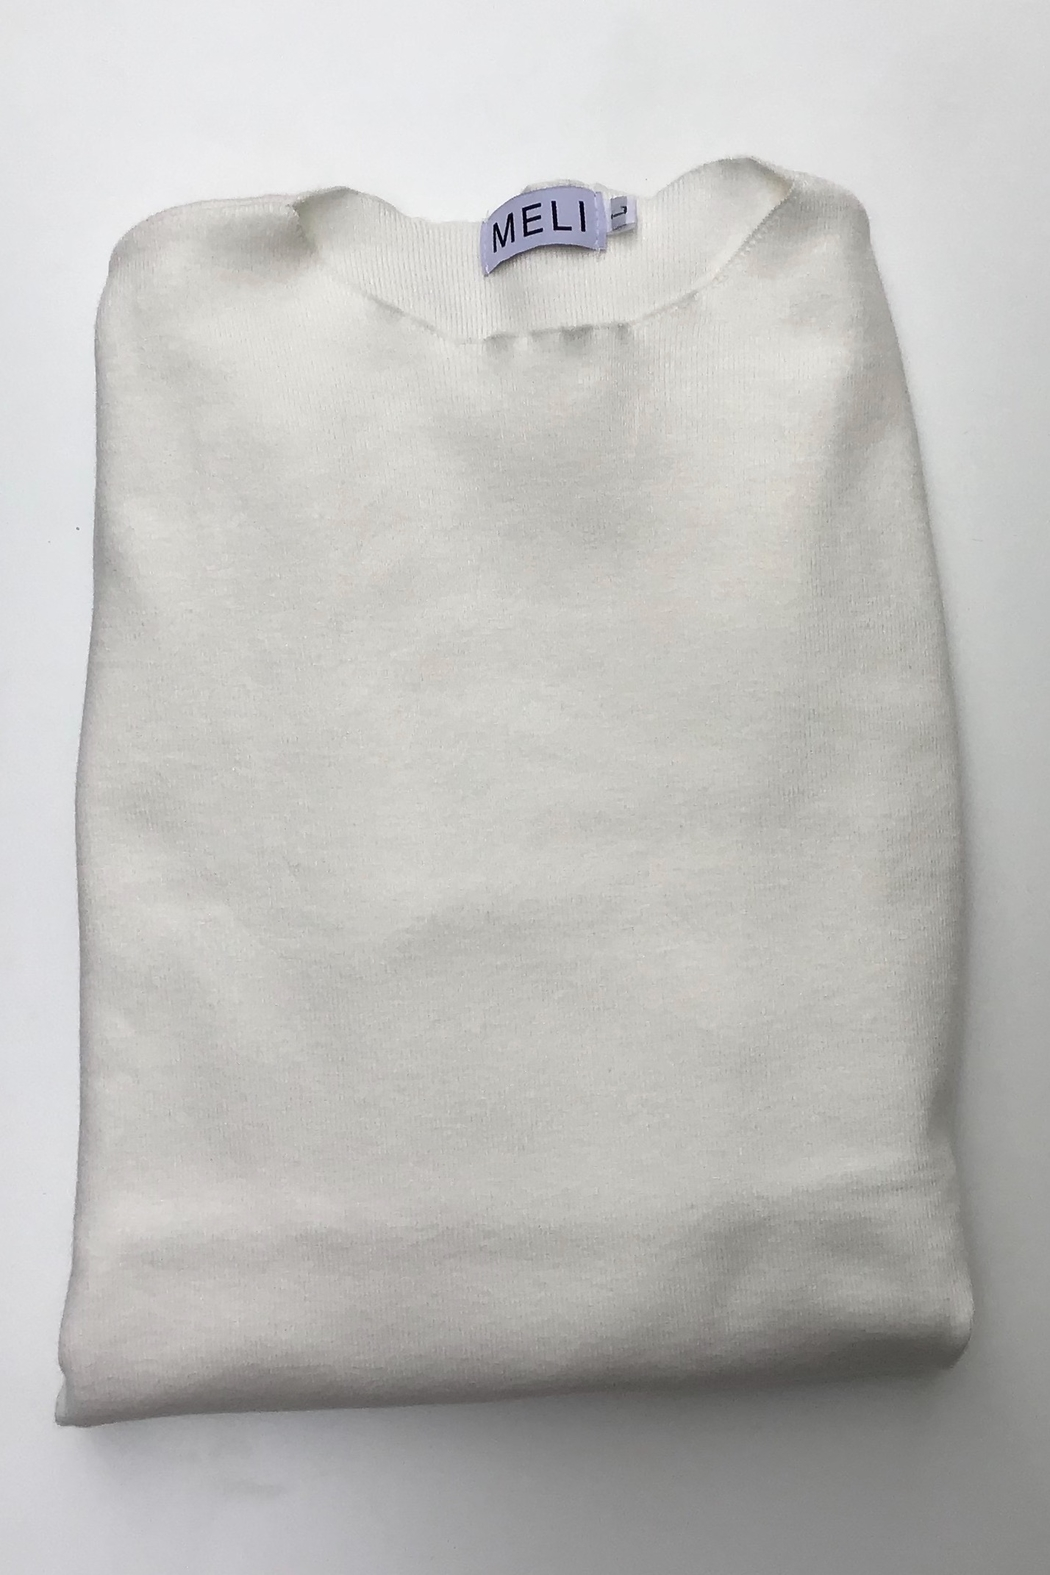 Meli by FAME KNIT TULIP SWEATER - Front Cropped Image